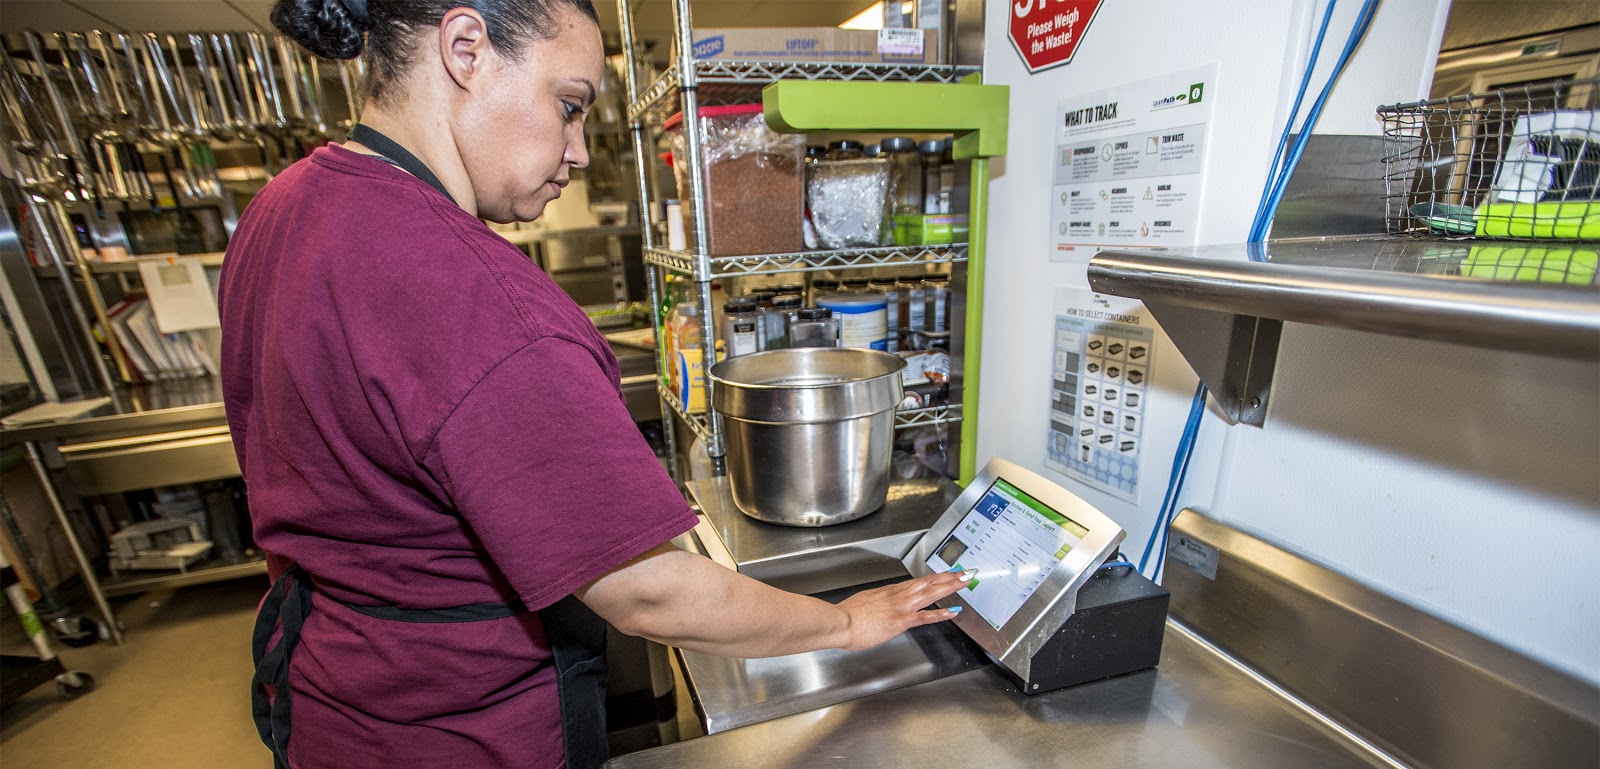 Running A Lean Kitchen Like Google And Sodexo Is The Path To Food Waste Prevention Greenbiz